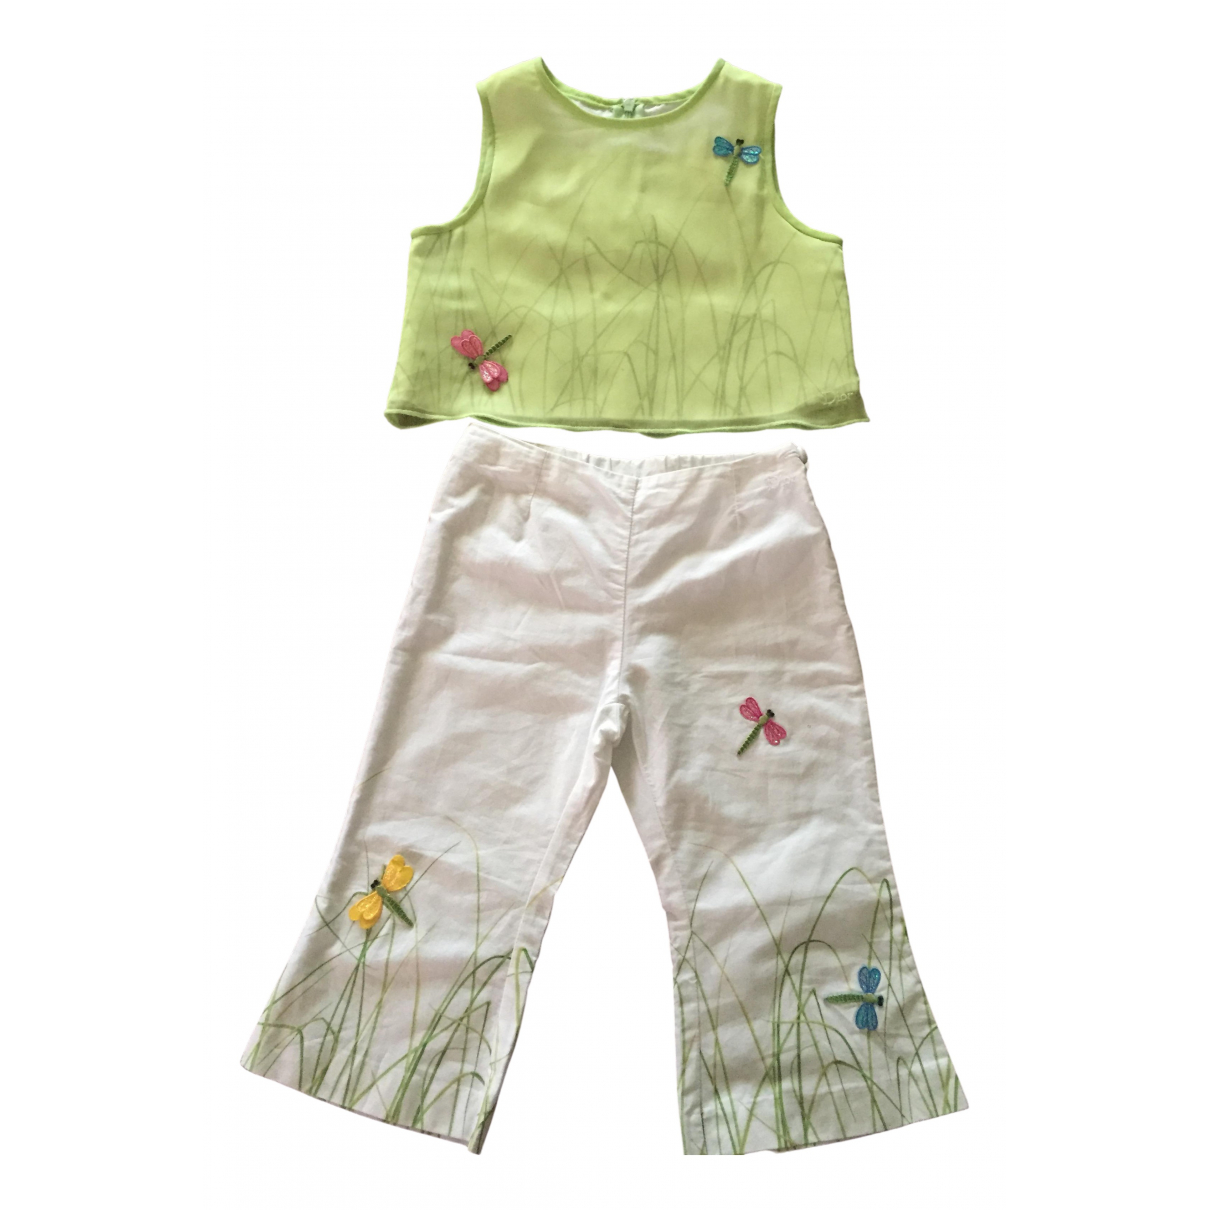 Dior \N Multicolour Cotton Outfits for Kids 4 years - up to 102cm FR